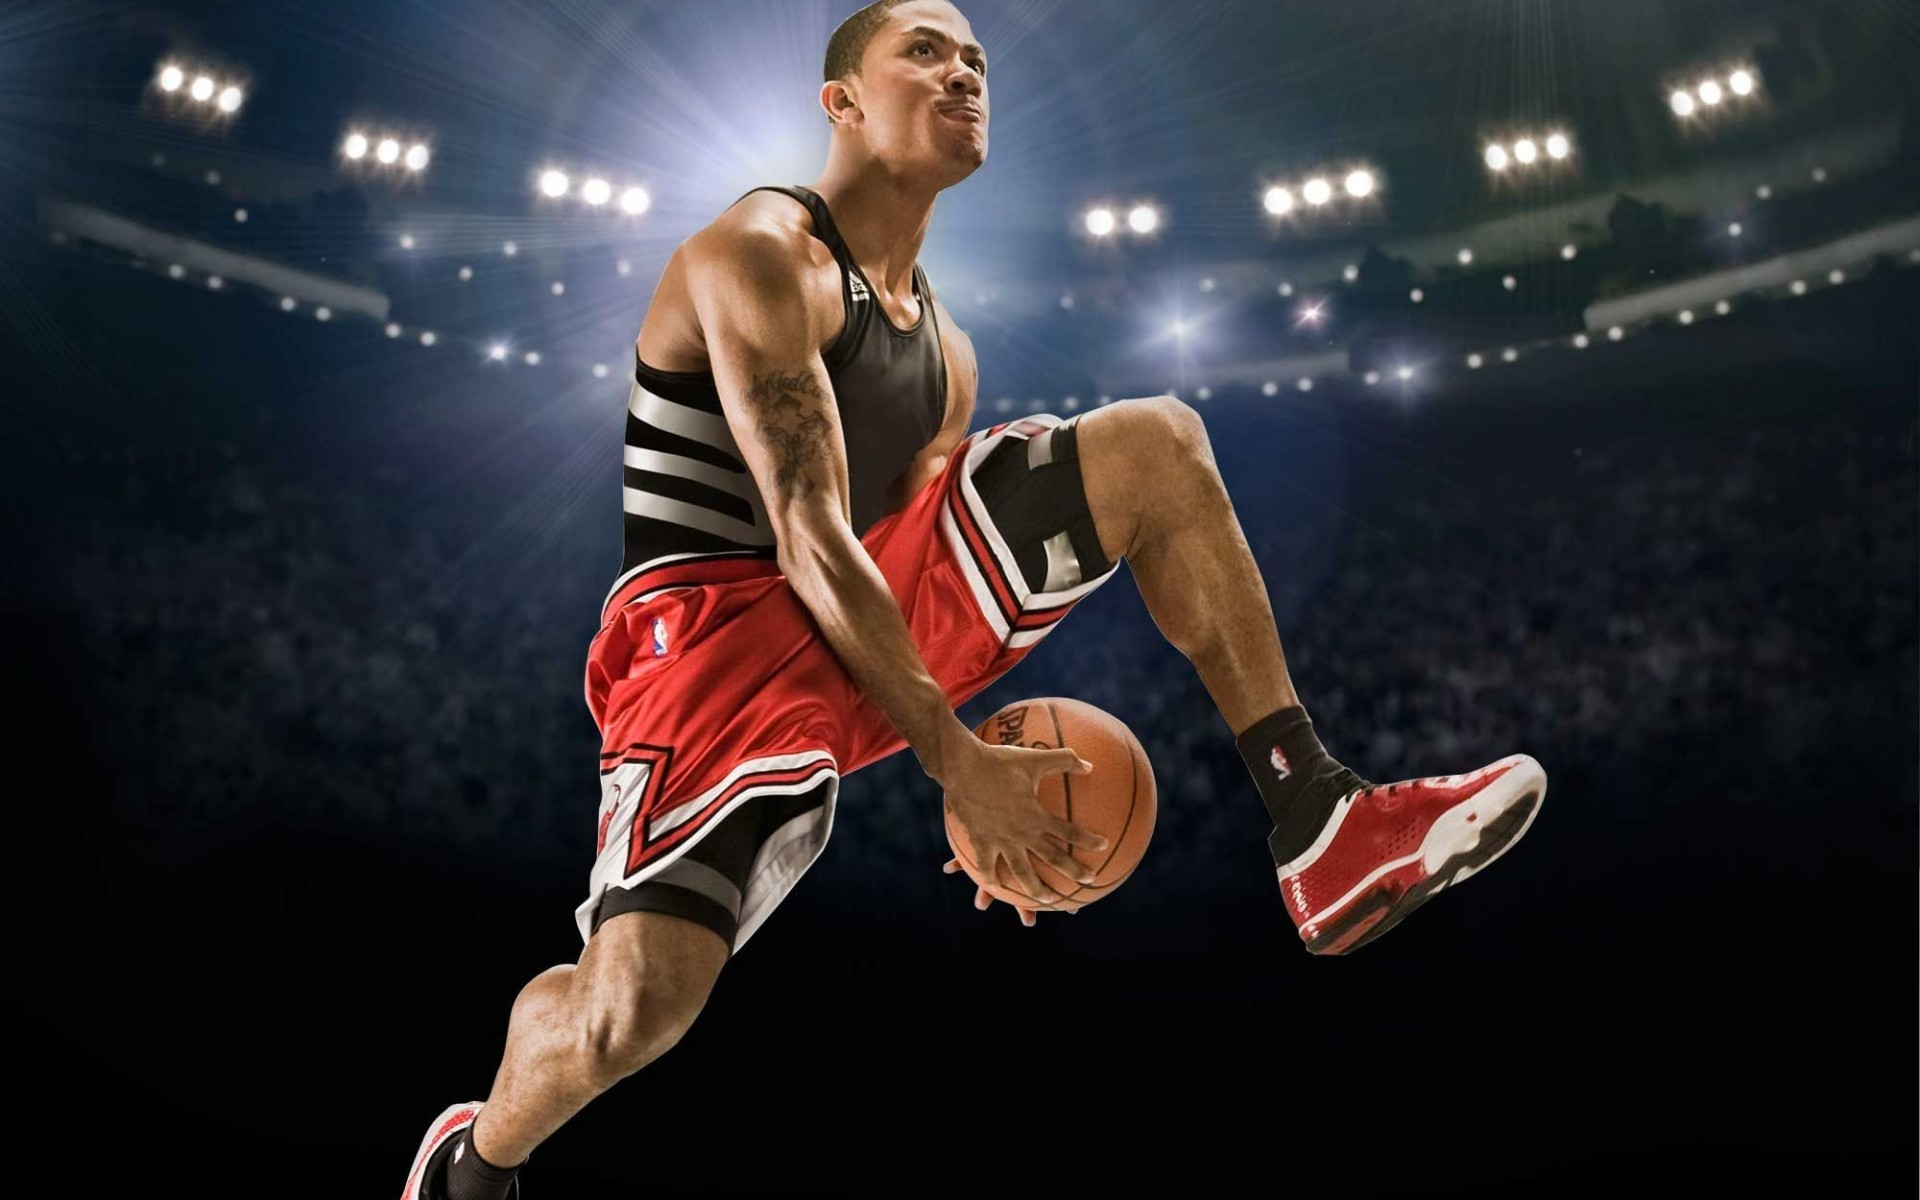 Derrick Rose Shoes Derrick Rose Hd - High Definition Wallpaper